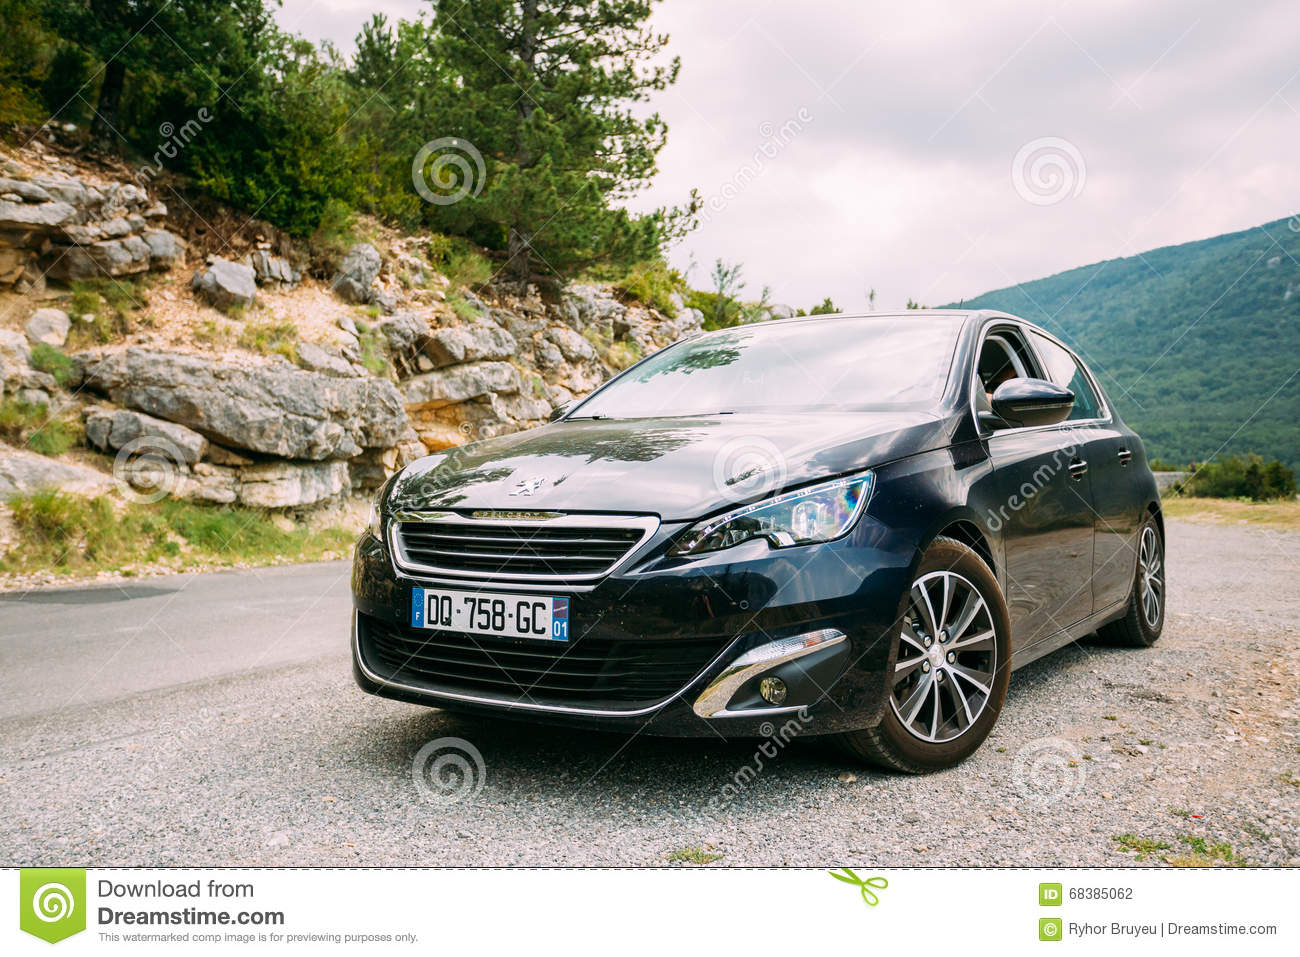 Black colour Peugeot 308 car on background of French mountain